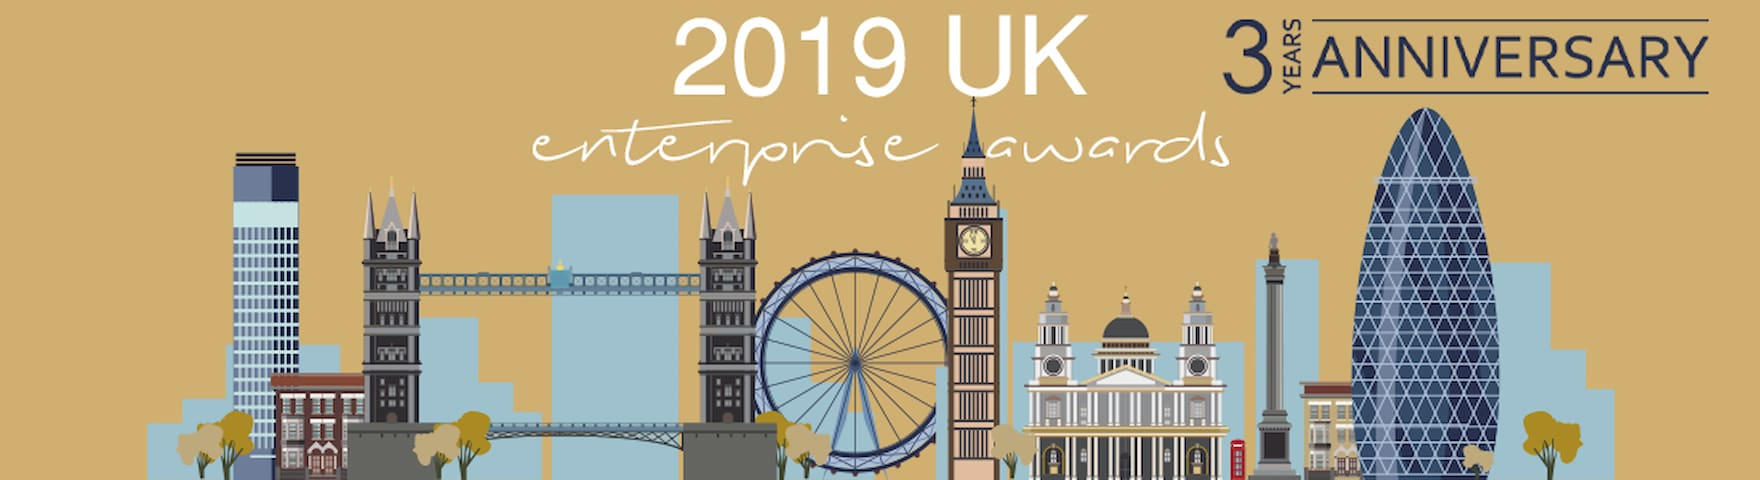 Best in Executive Class Serviced Apartments 2019 – Berkshire